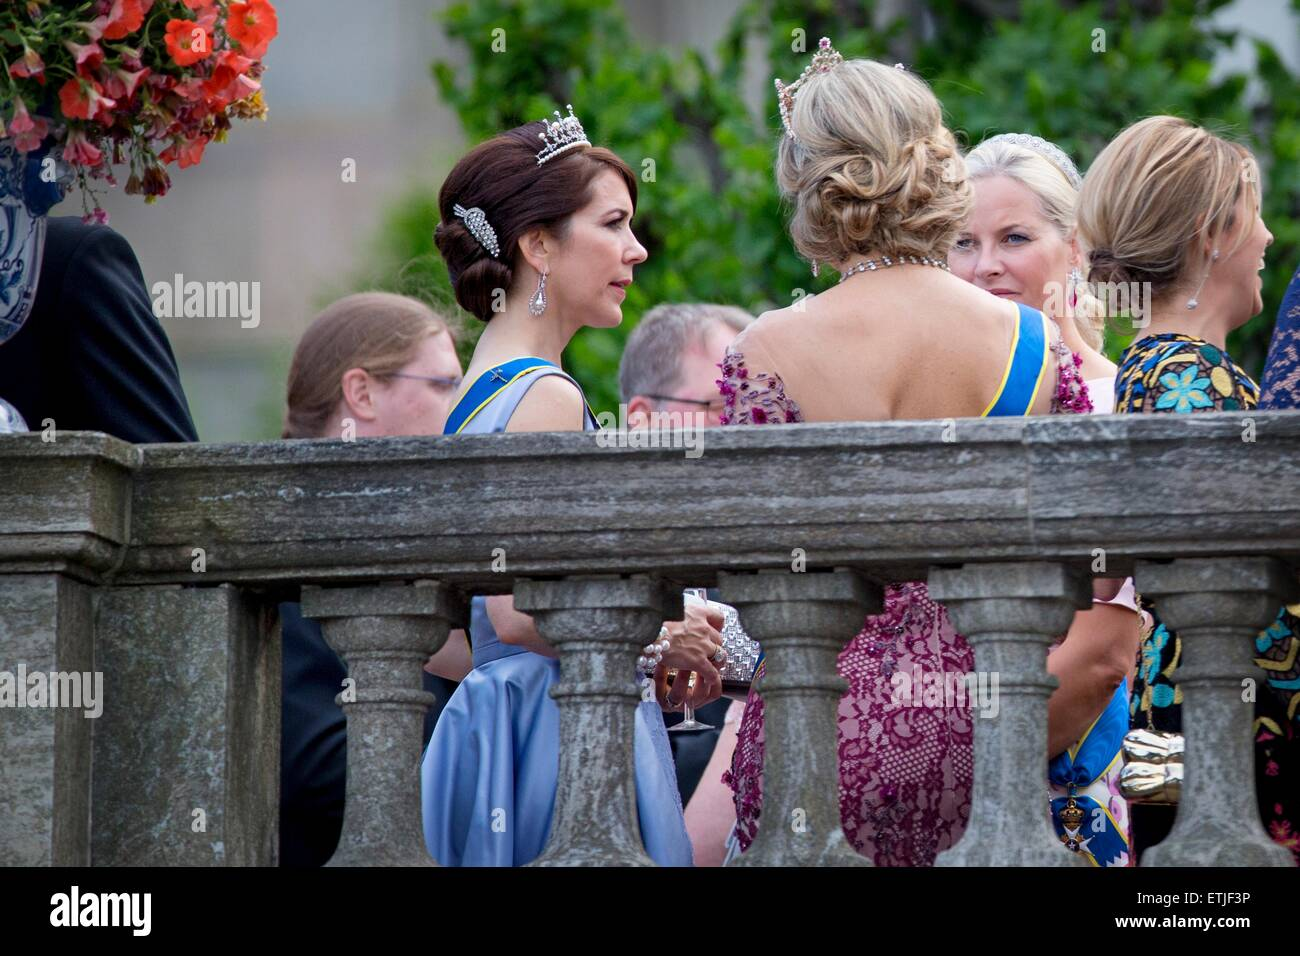 queen-maxima-c-of-the-netherlands-crown-princess-mary-2nd-l-of-denmark-ETJF3P.jpg